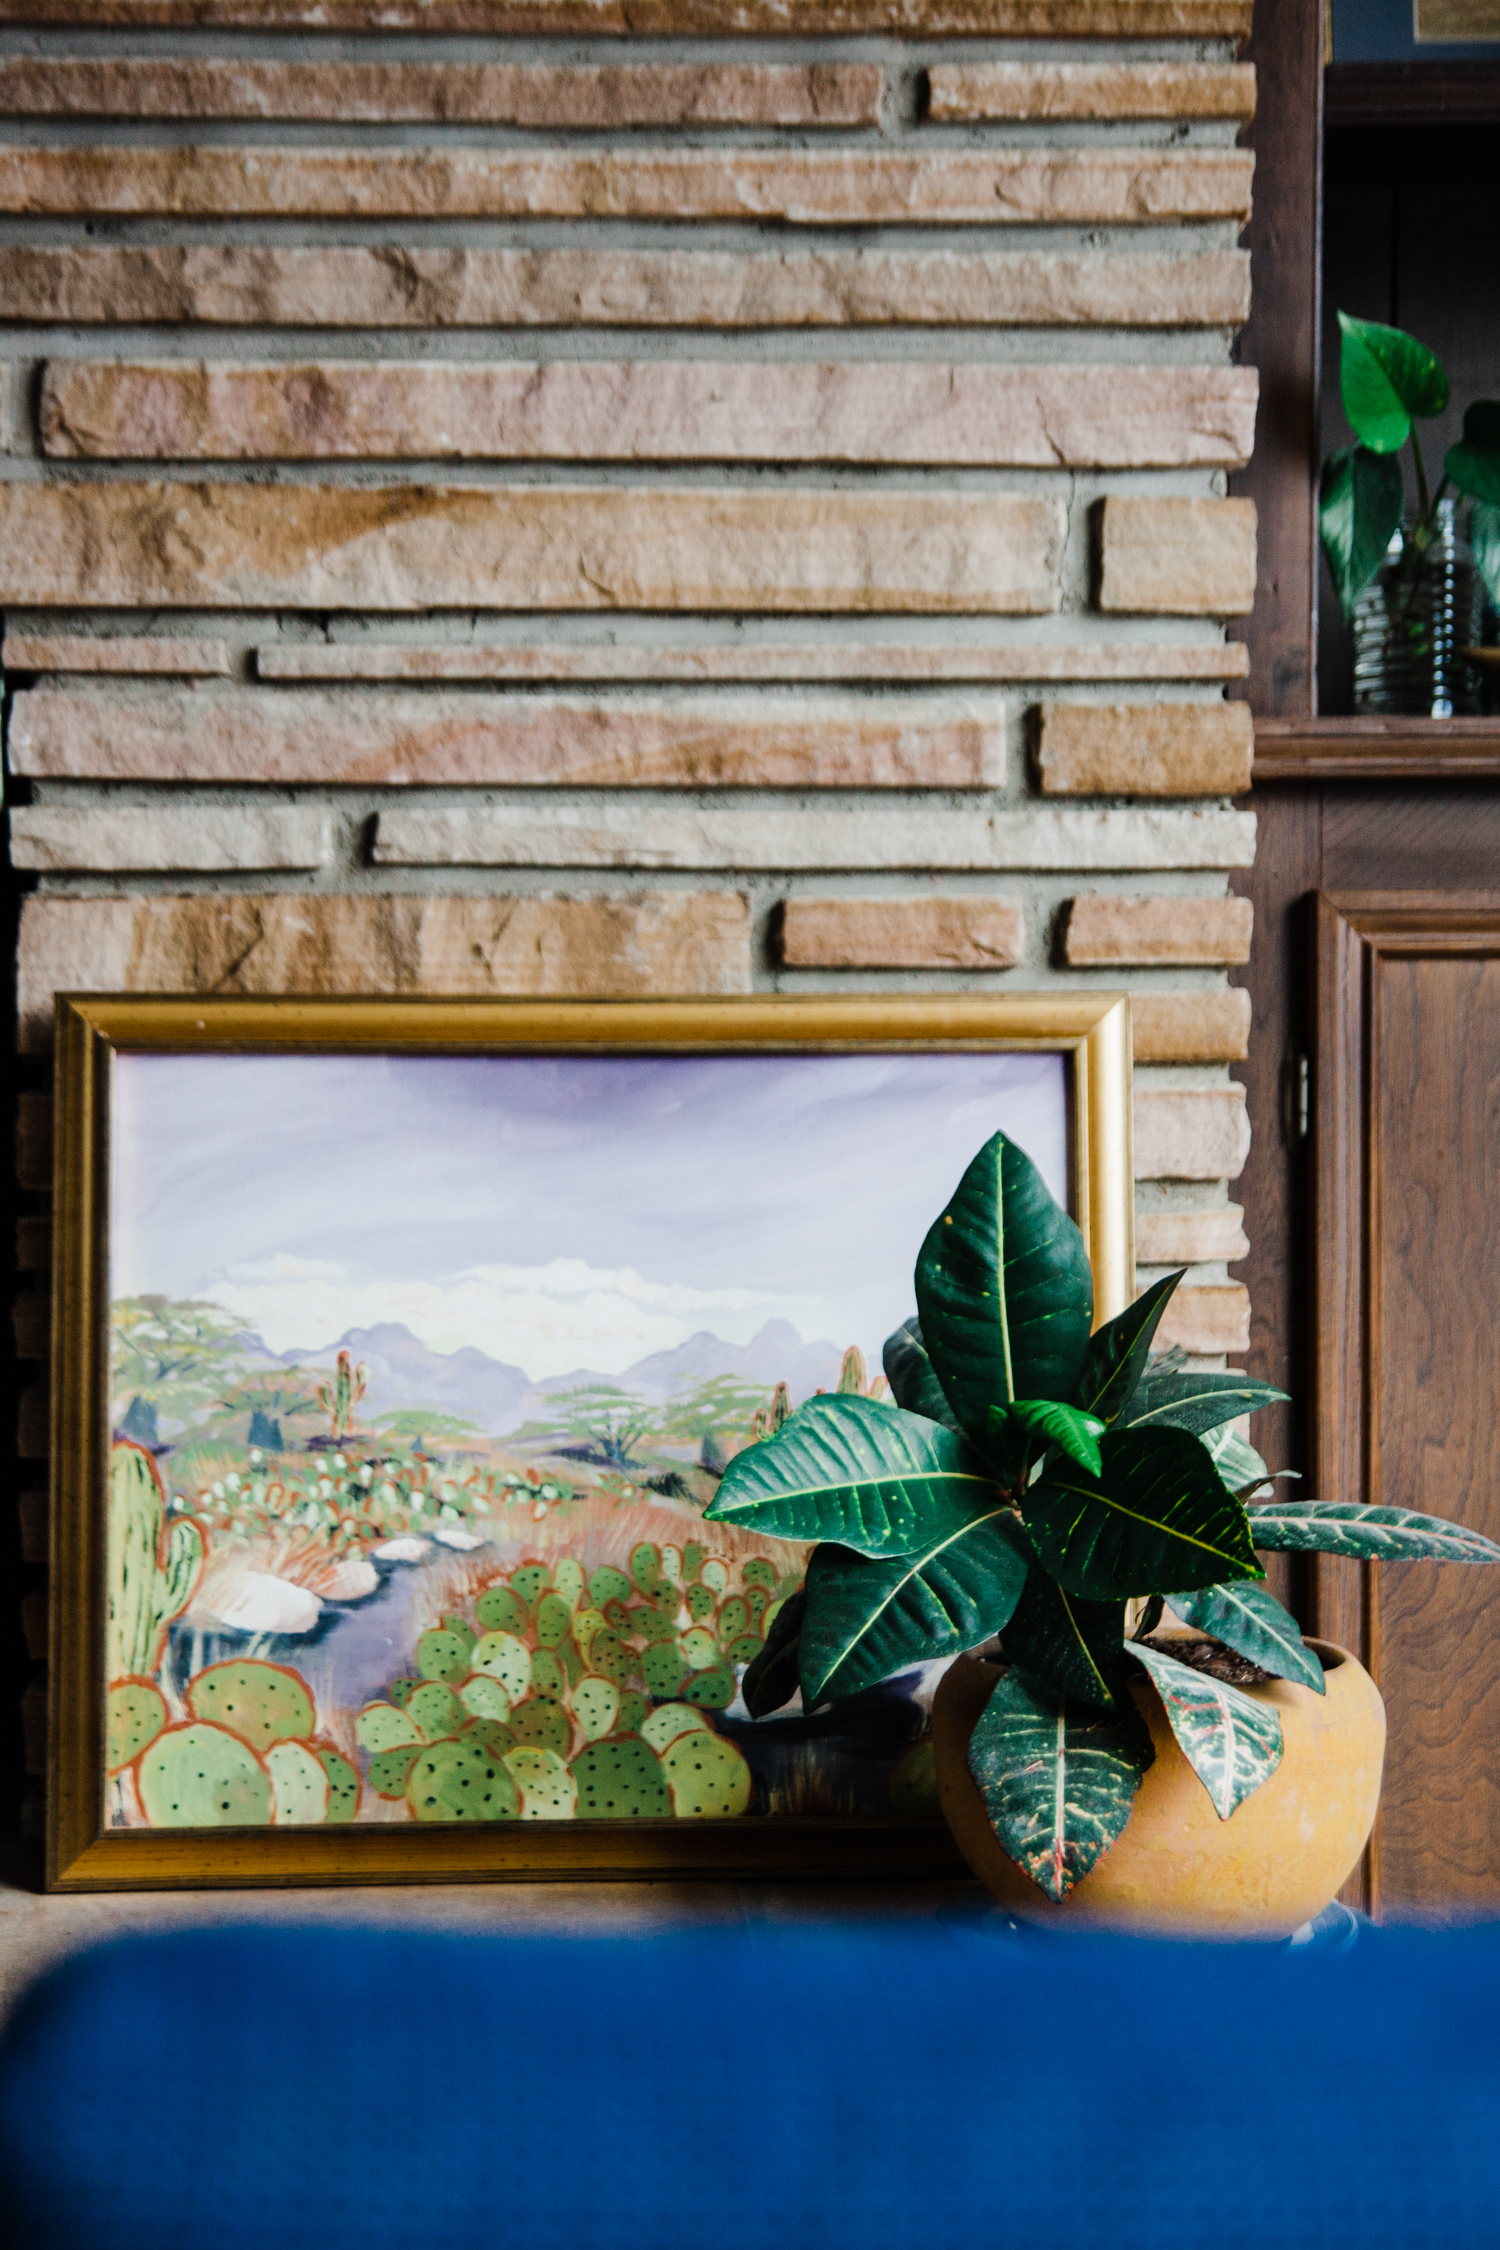 Palmer painted this painting the day she asked me if I'd ever want to own a vintage shop. *hearts* I love how Palmer paired this painting with the yellow pot–beautiful. - Daly